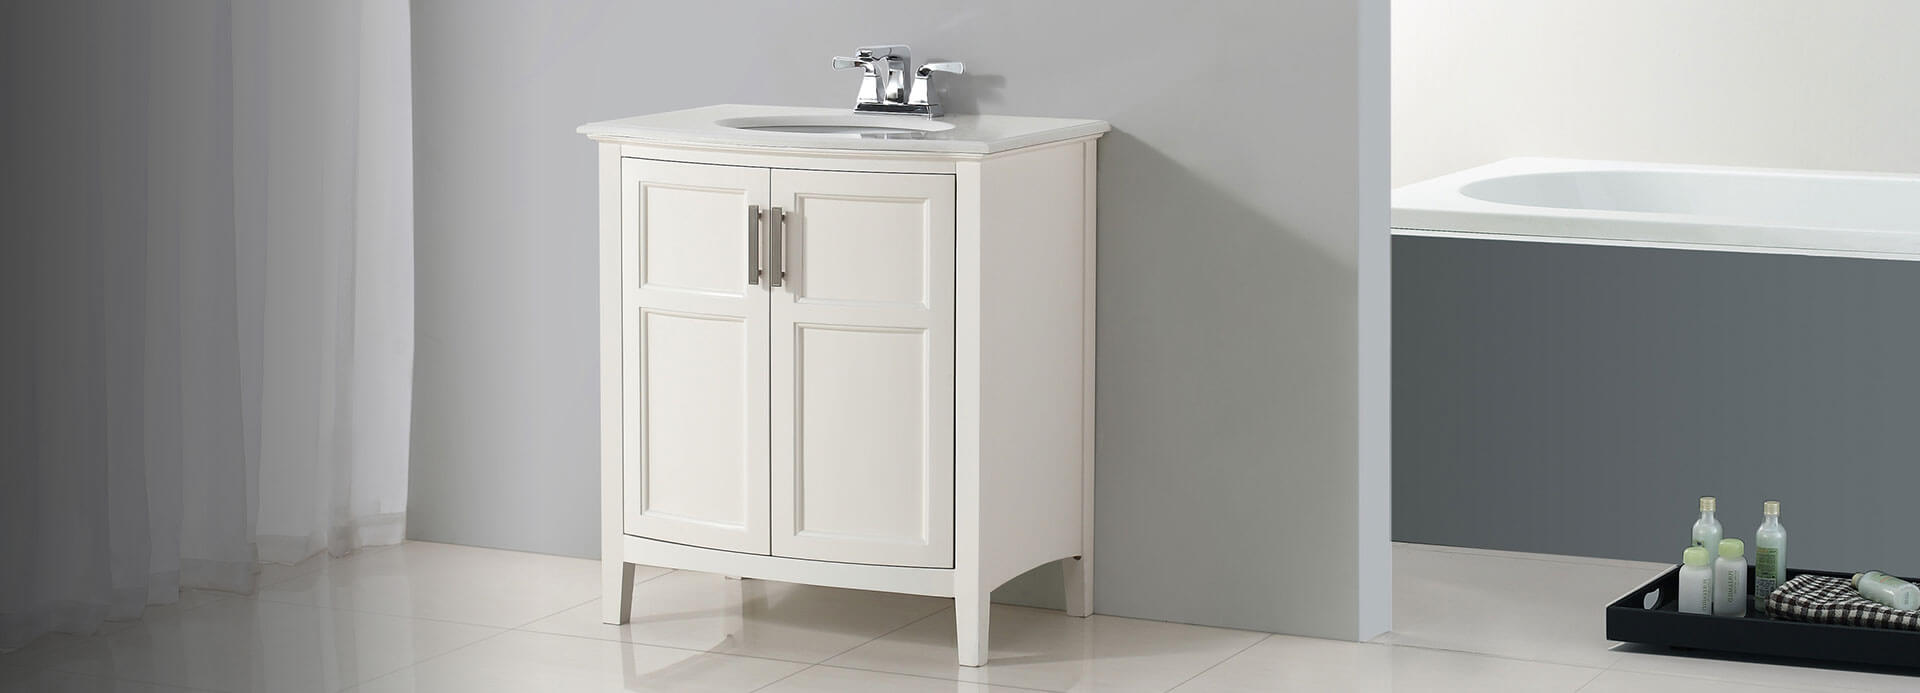 Bathroom Furniture | Amazon.com